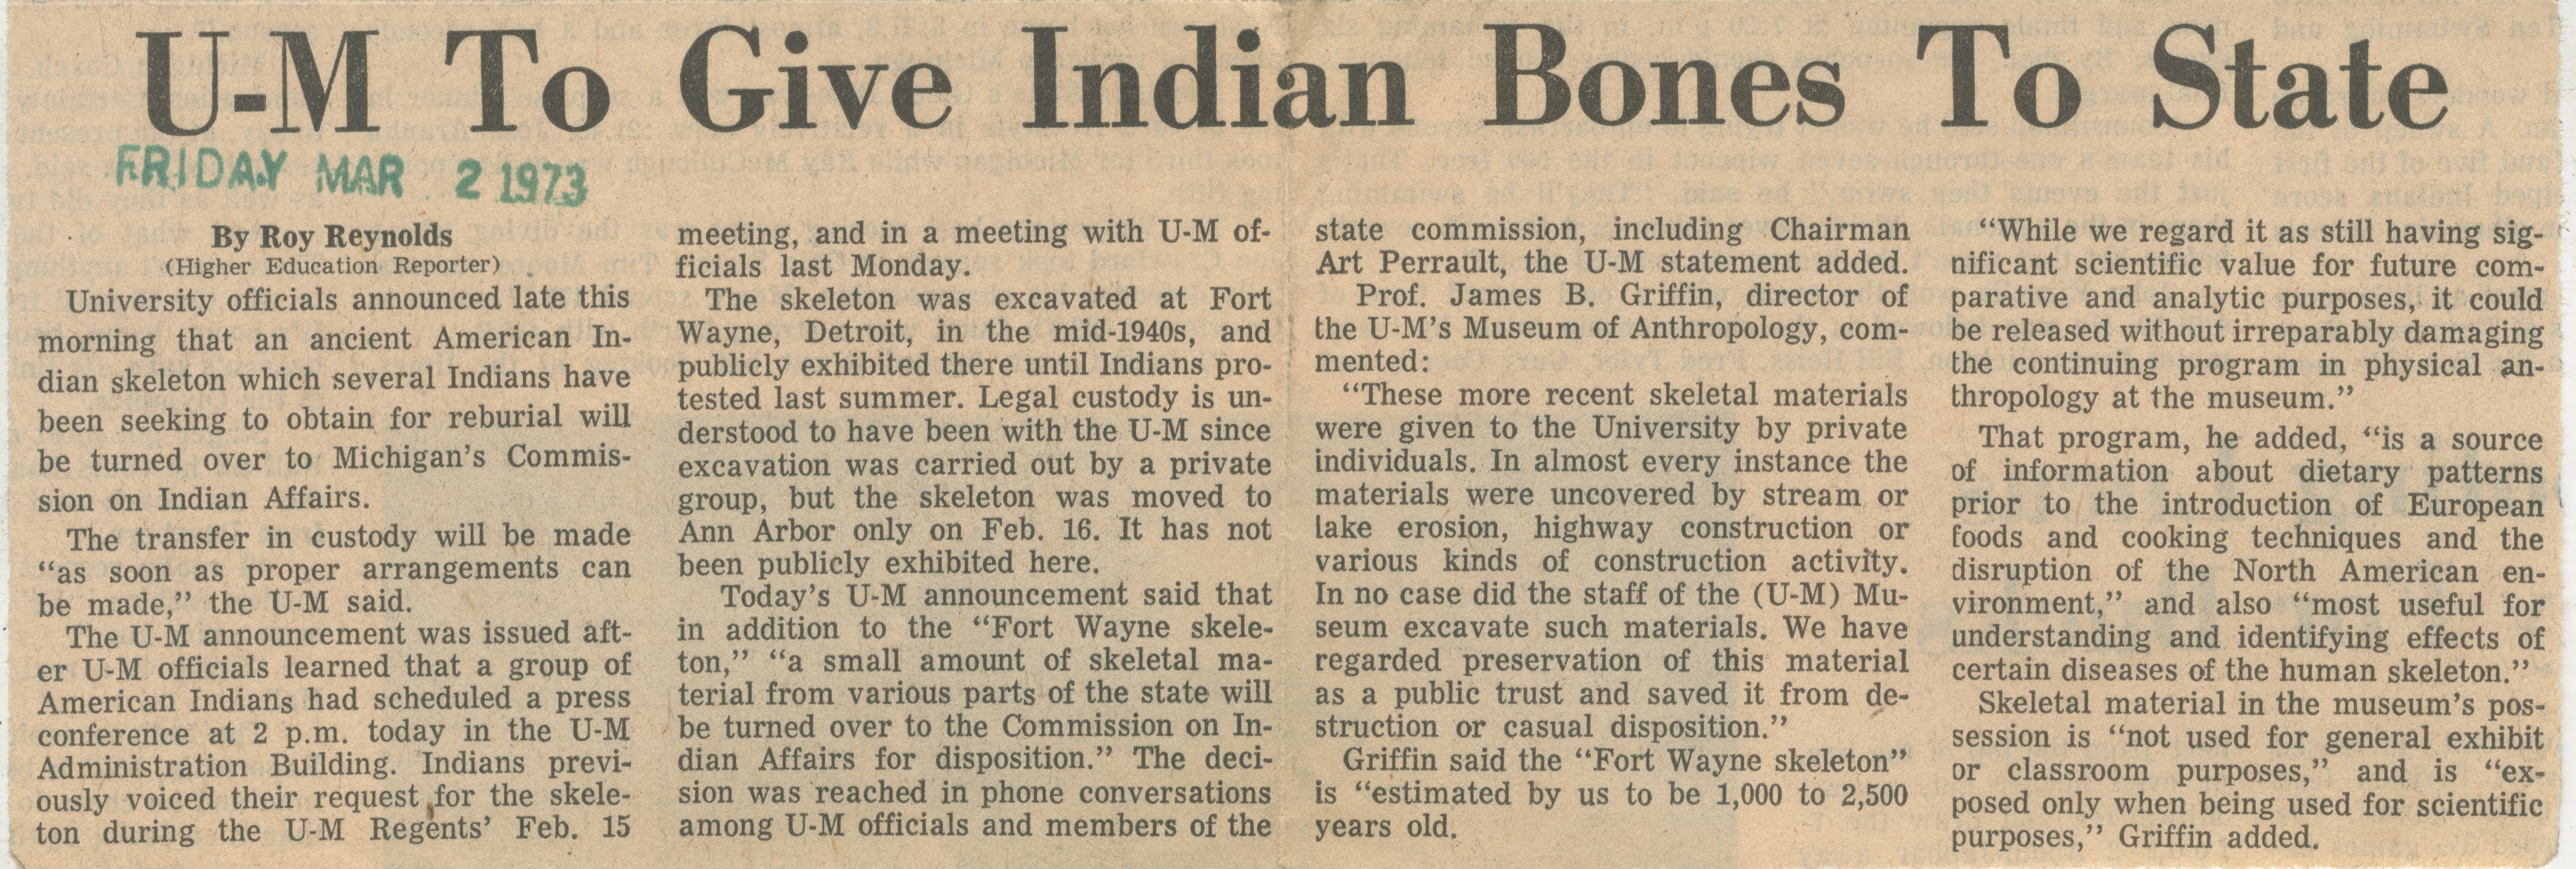 U-M To Give Indian Bones To State image